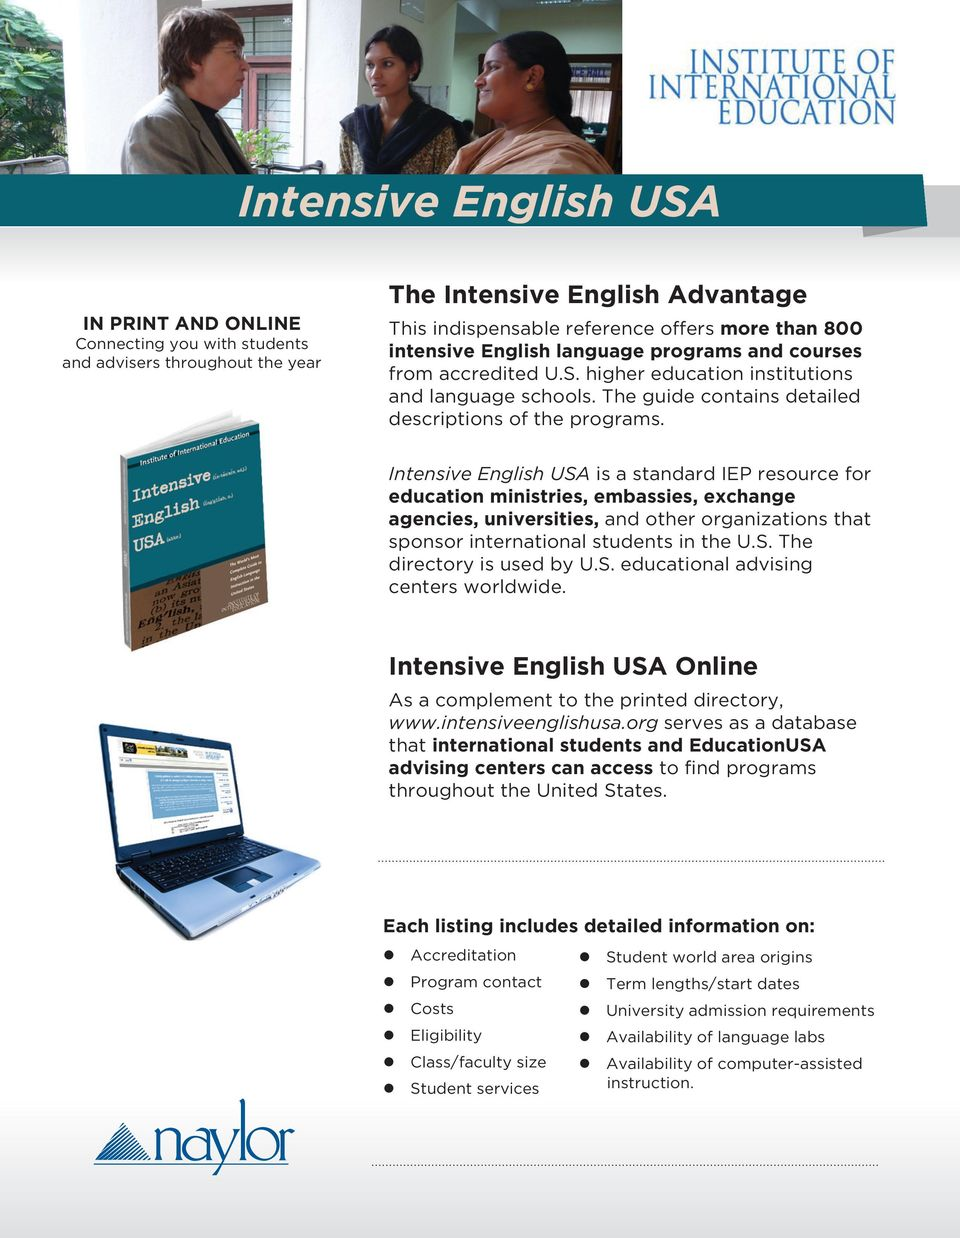 Intensive English USA is a standard IEP resource for education ministries, embassies, exchange agencies, universities, and other organizations that sponsor international students in the U.S. The directory is used by U.